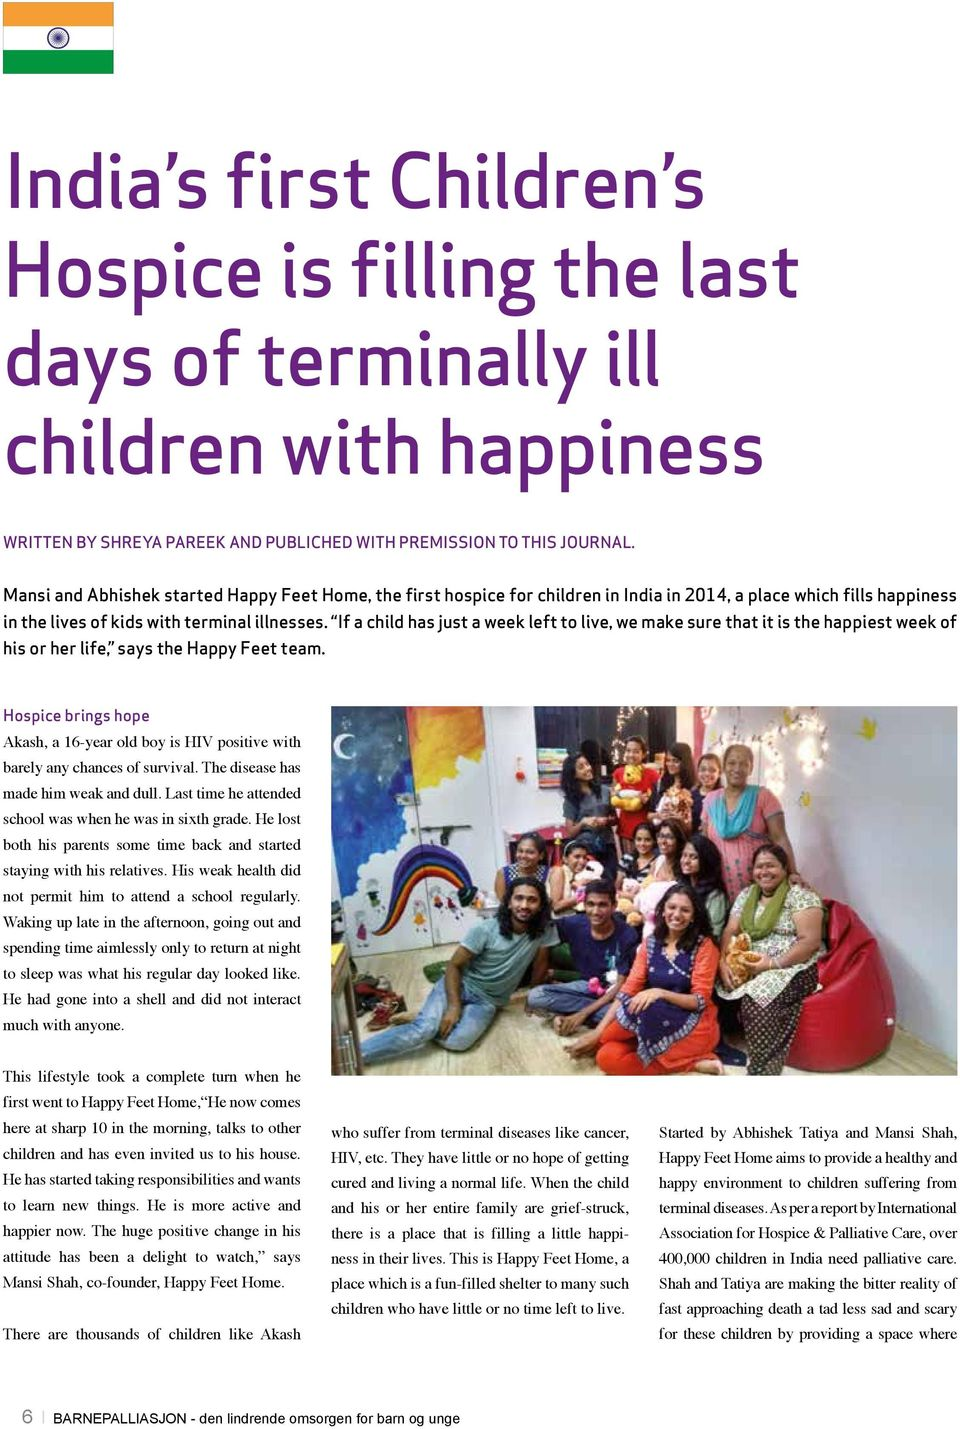 If a child has just a week left to live, we make sure that it is the happiest week of his or her life, says the Happy Feet team.